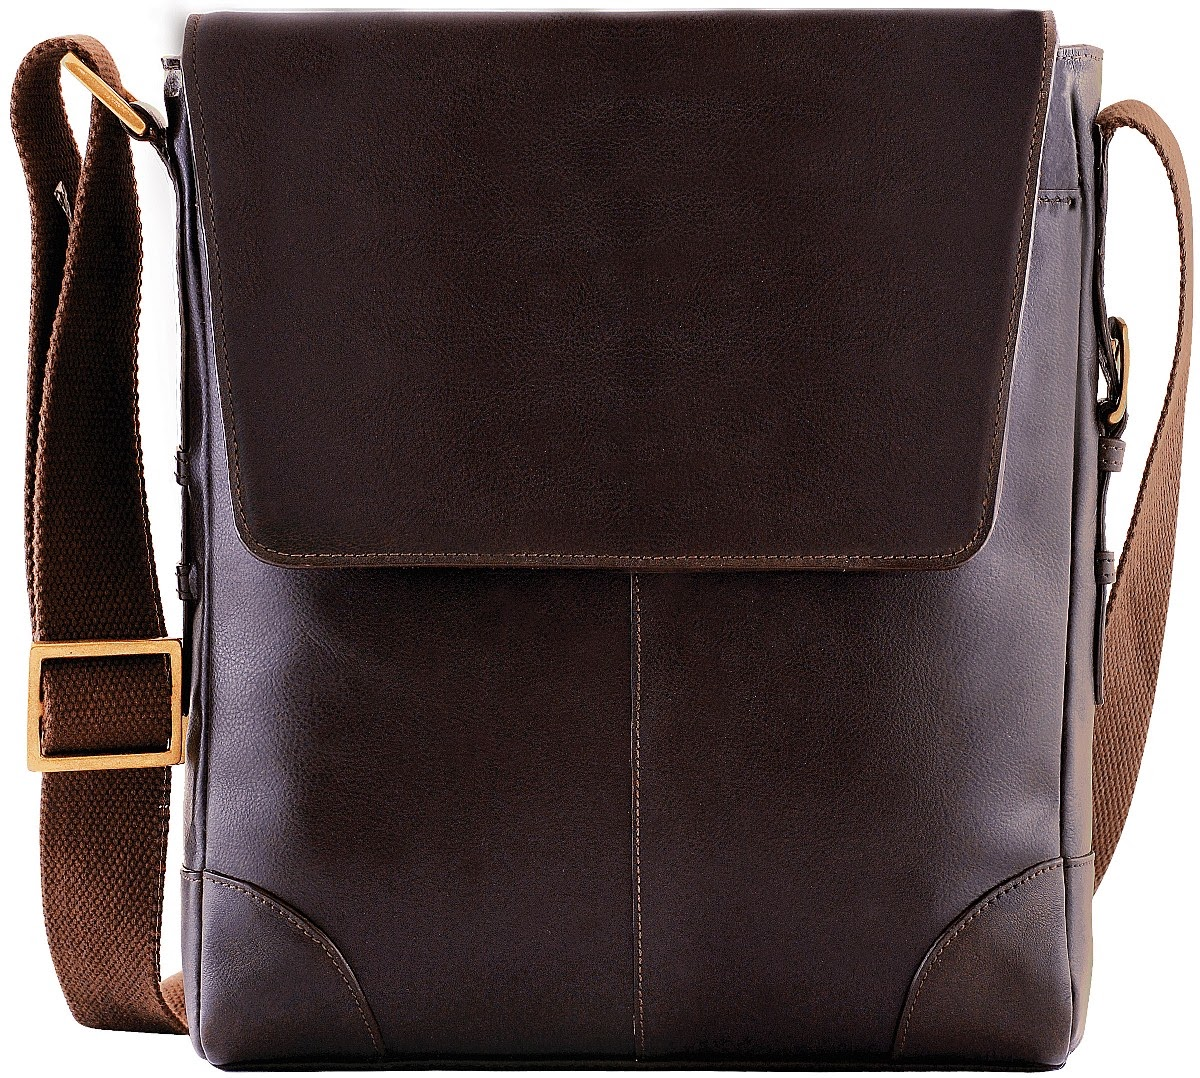 The Leather day bag